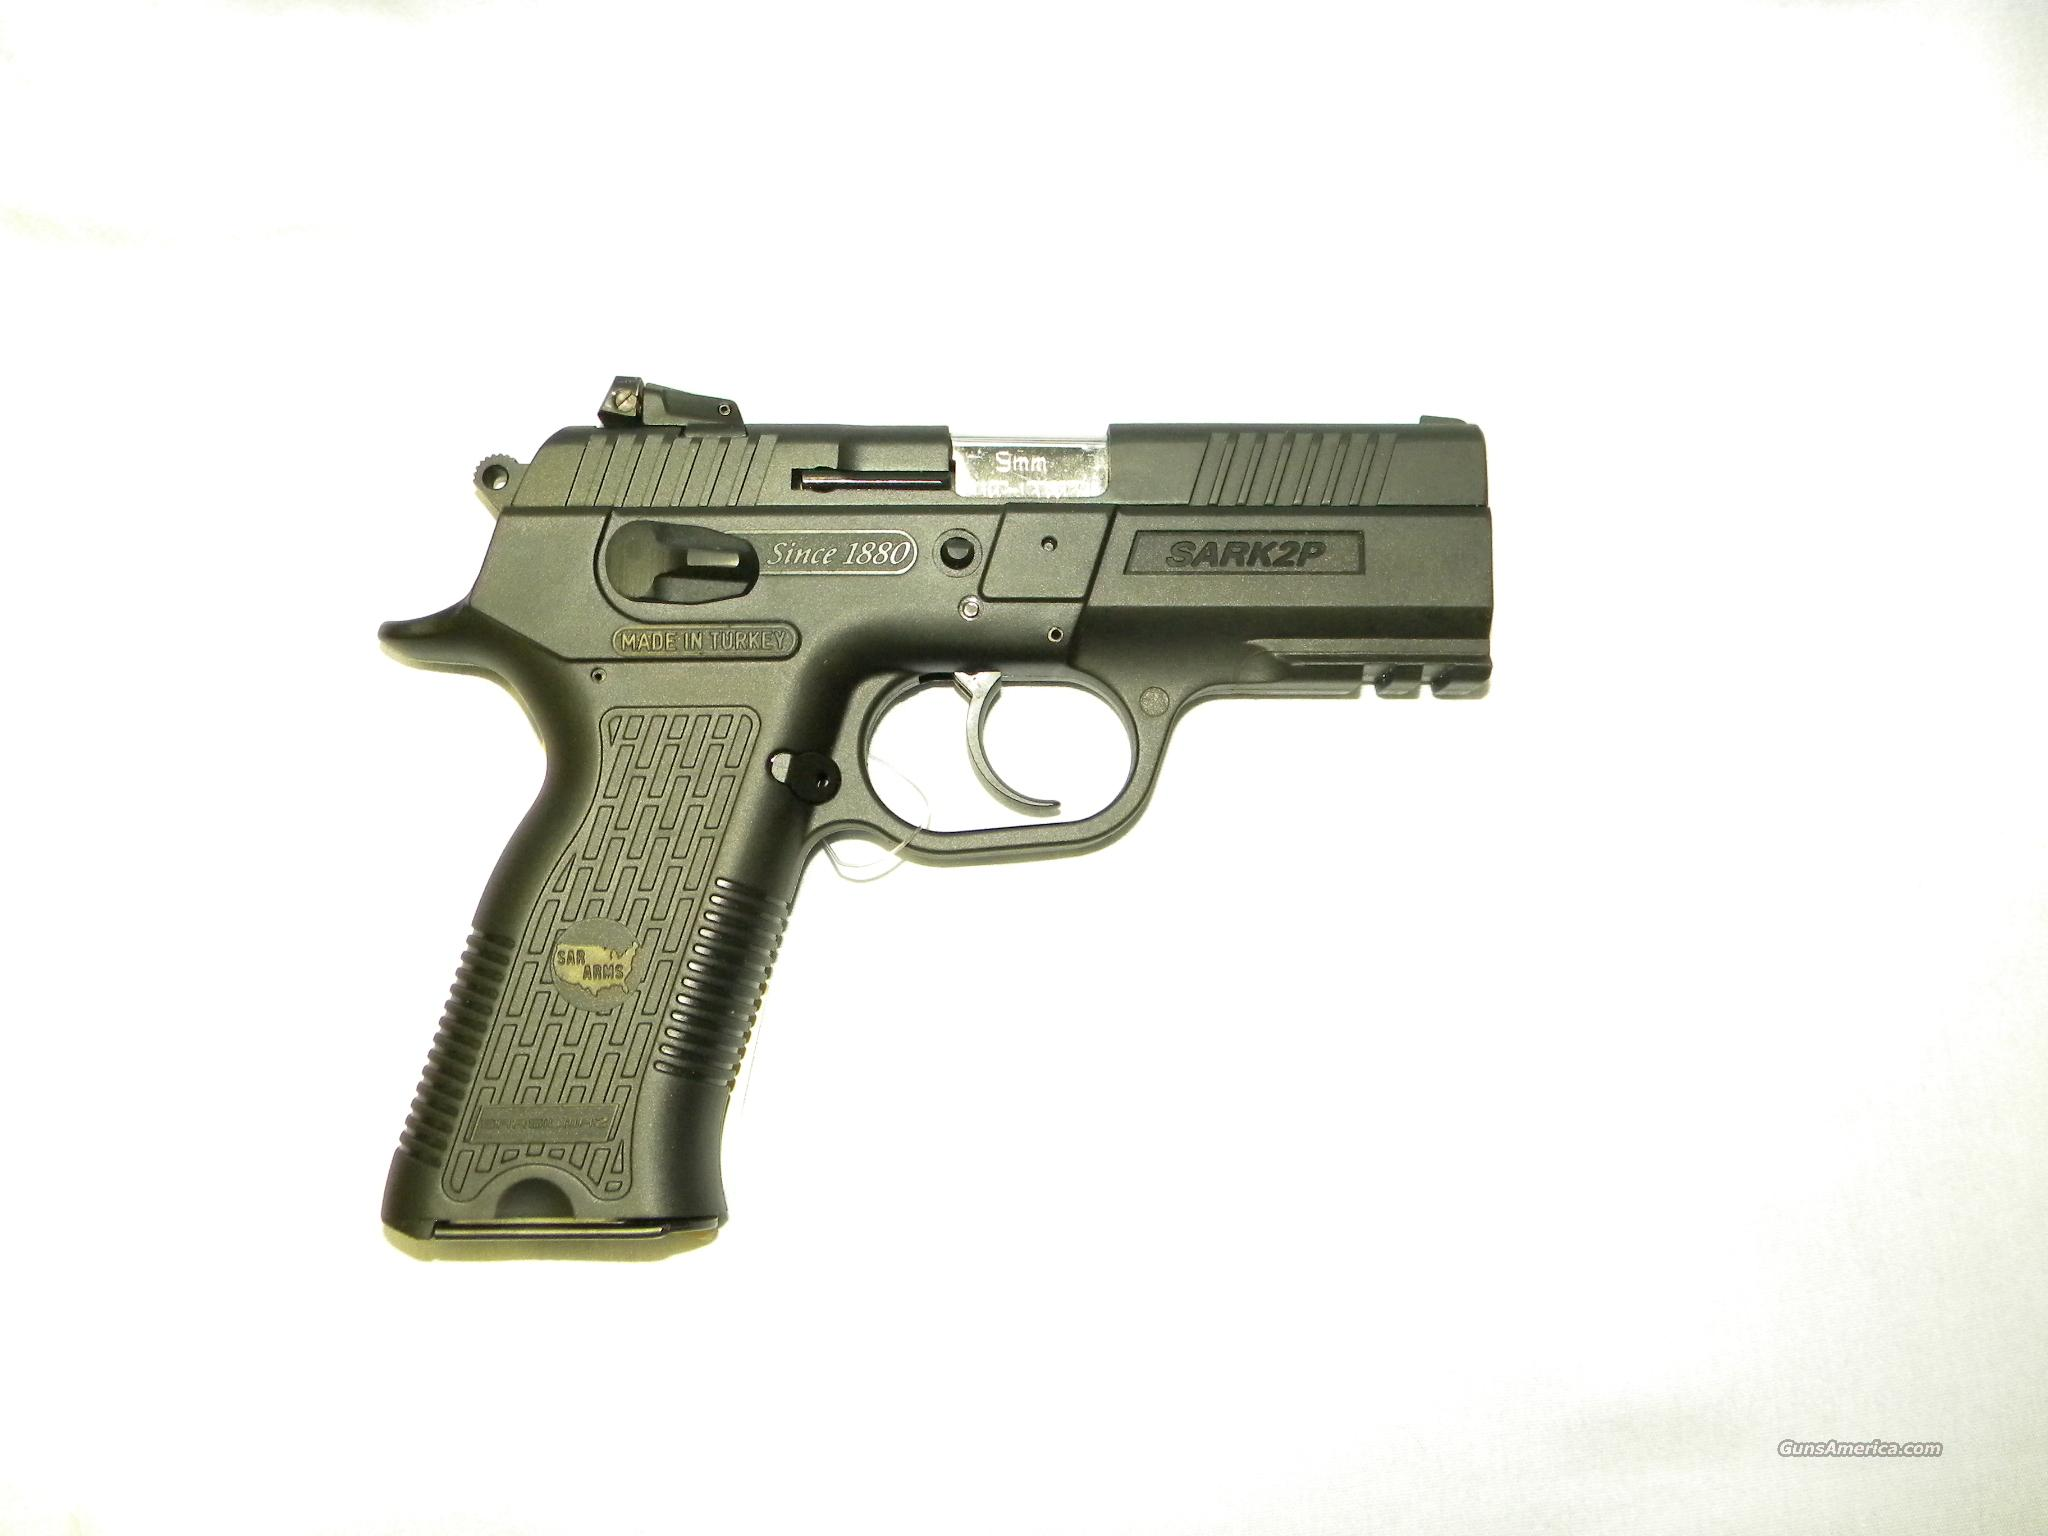 SAR Arms, SARK2P, 9mm   Guns > Pistols > EAA Pistols > Other